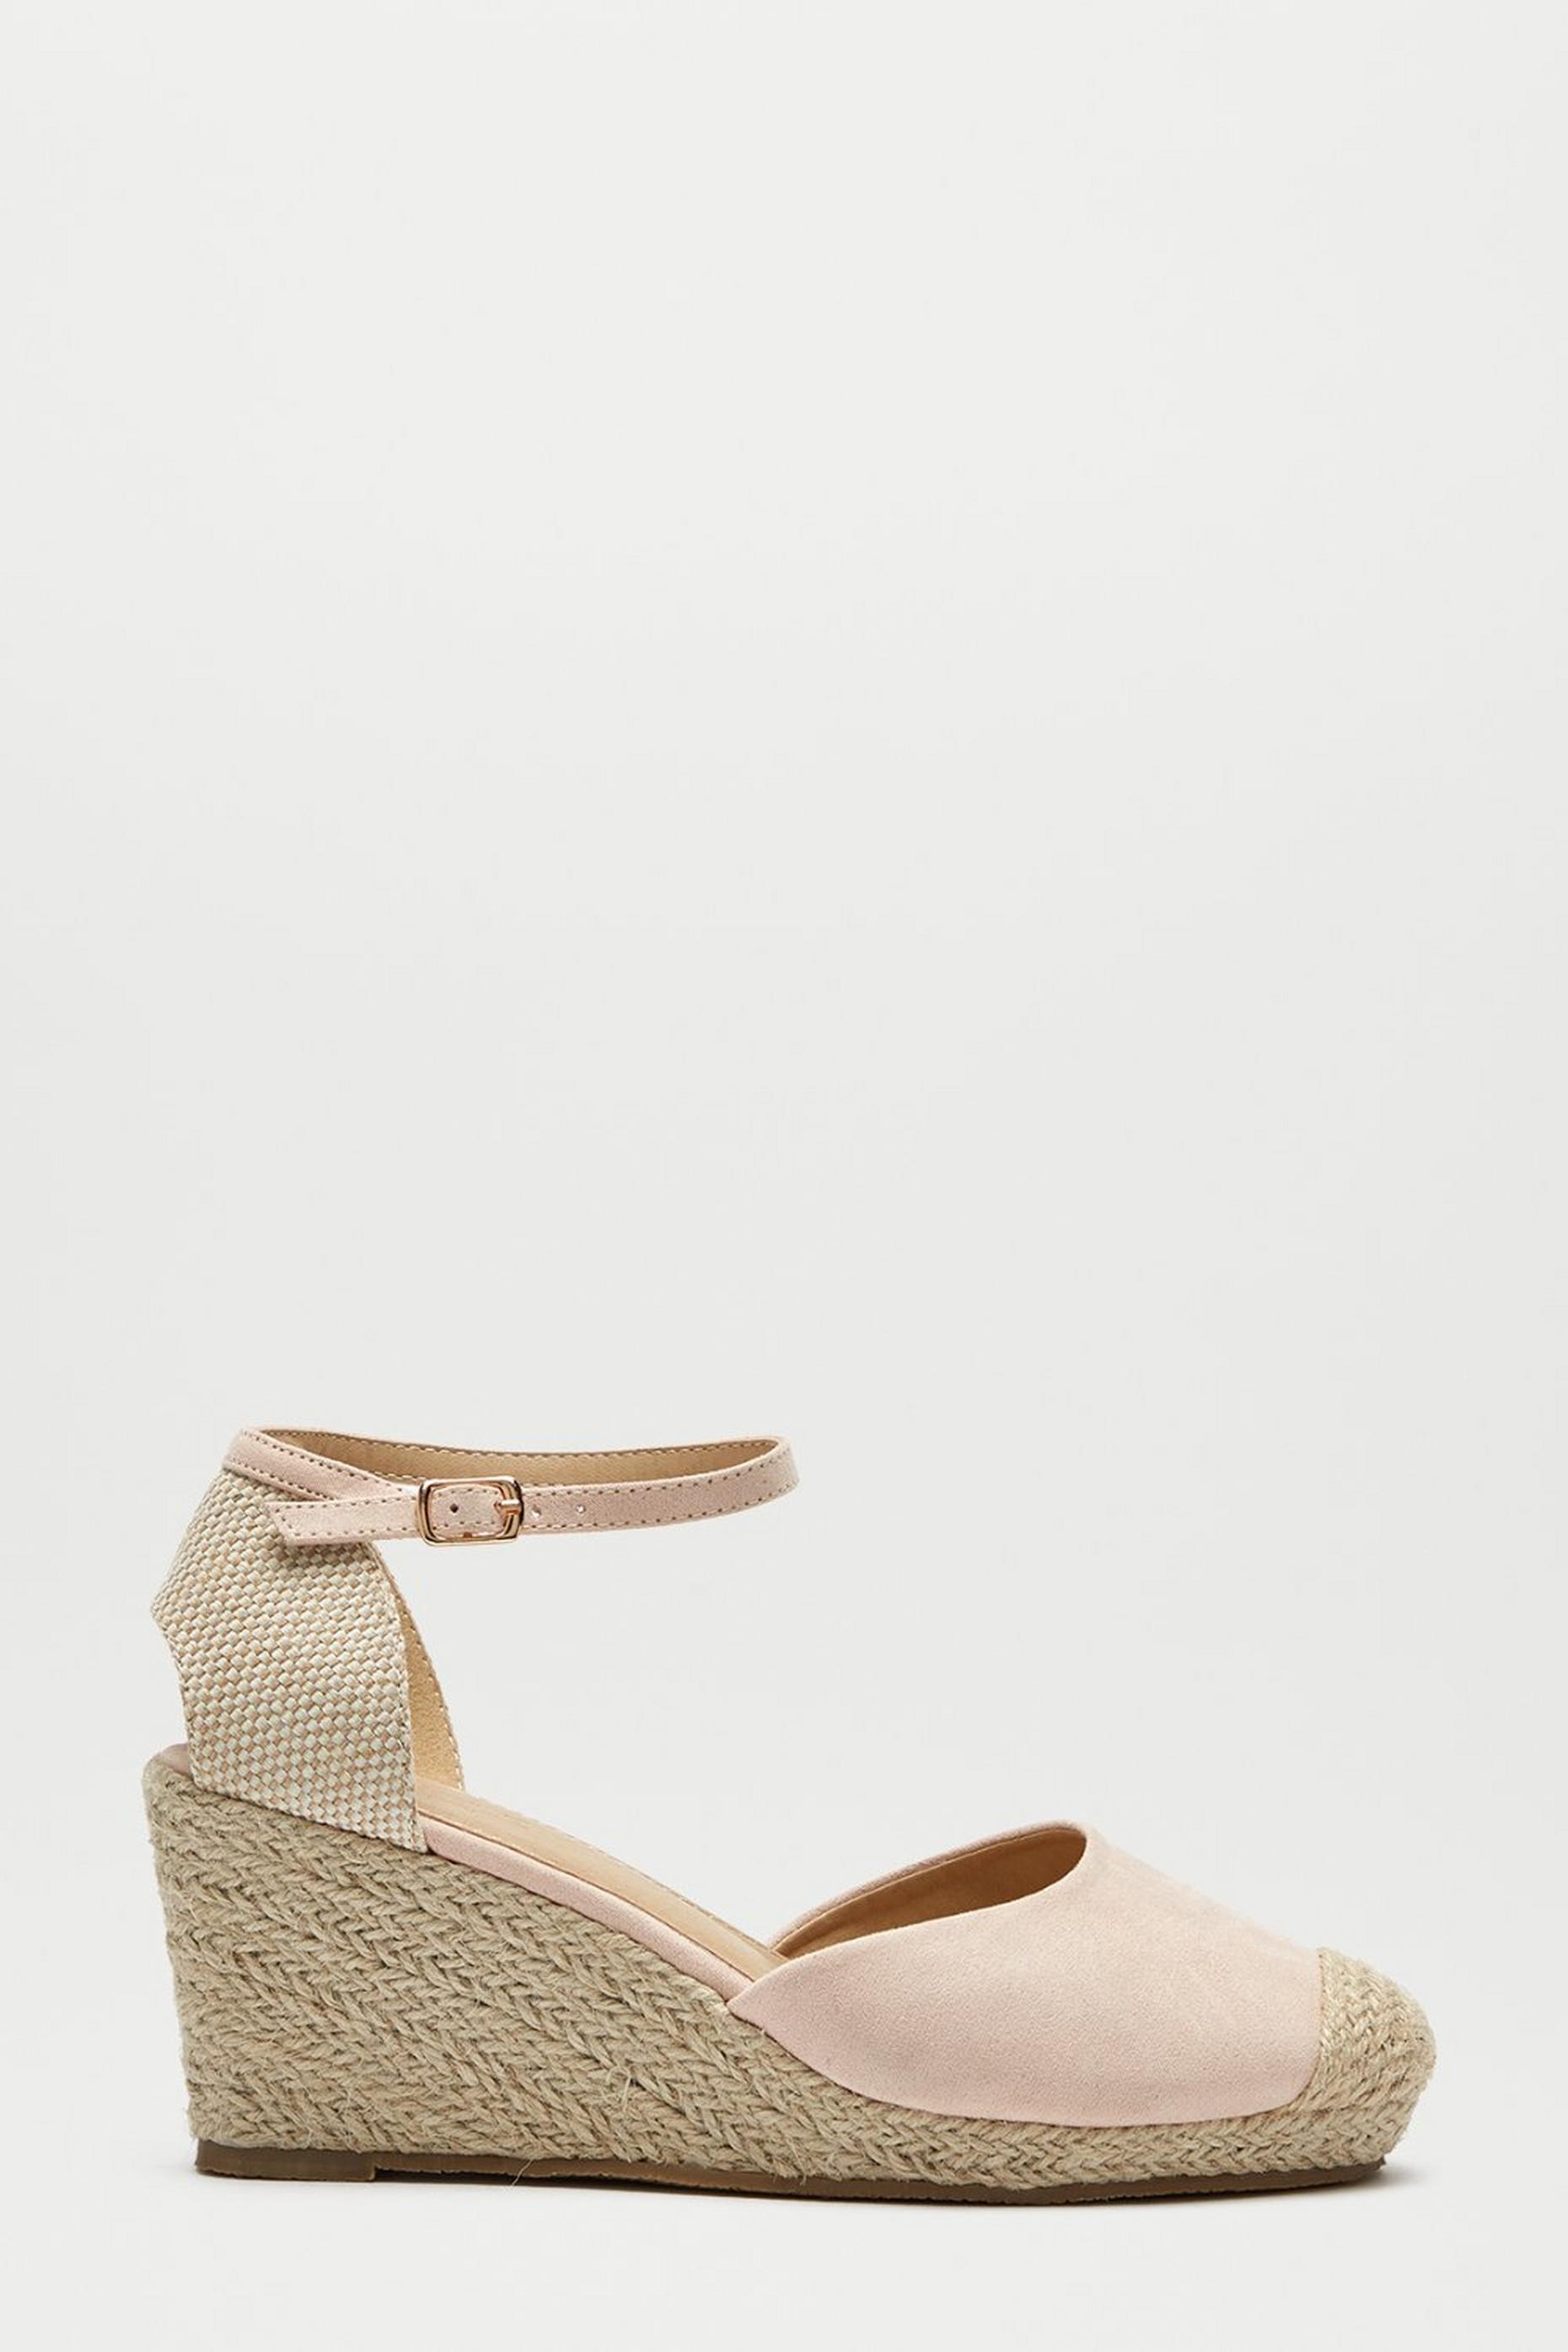 Blush Rowan Two Part Espadrille Wedge